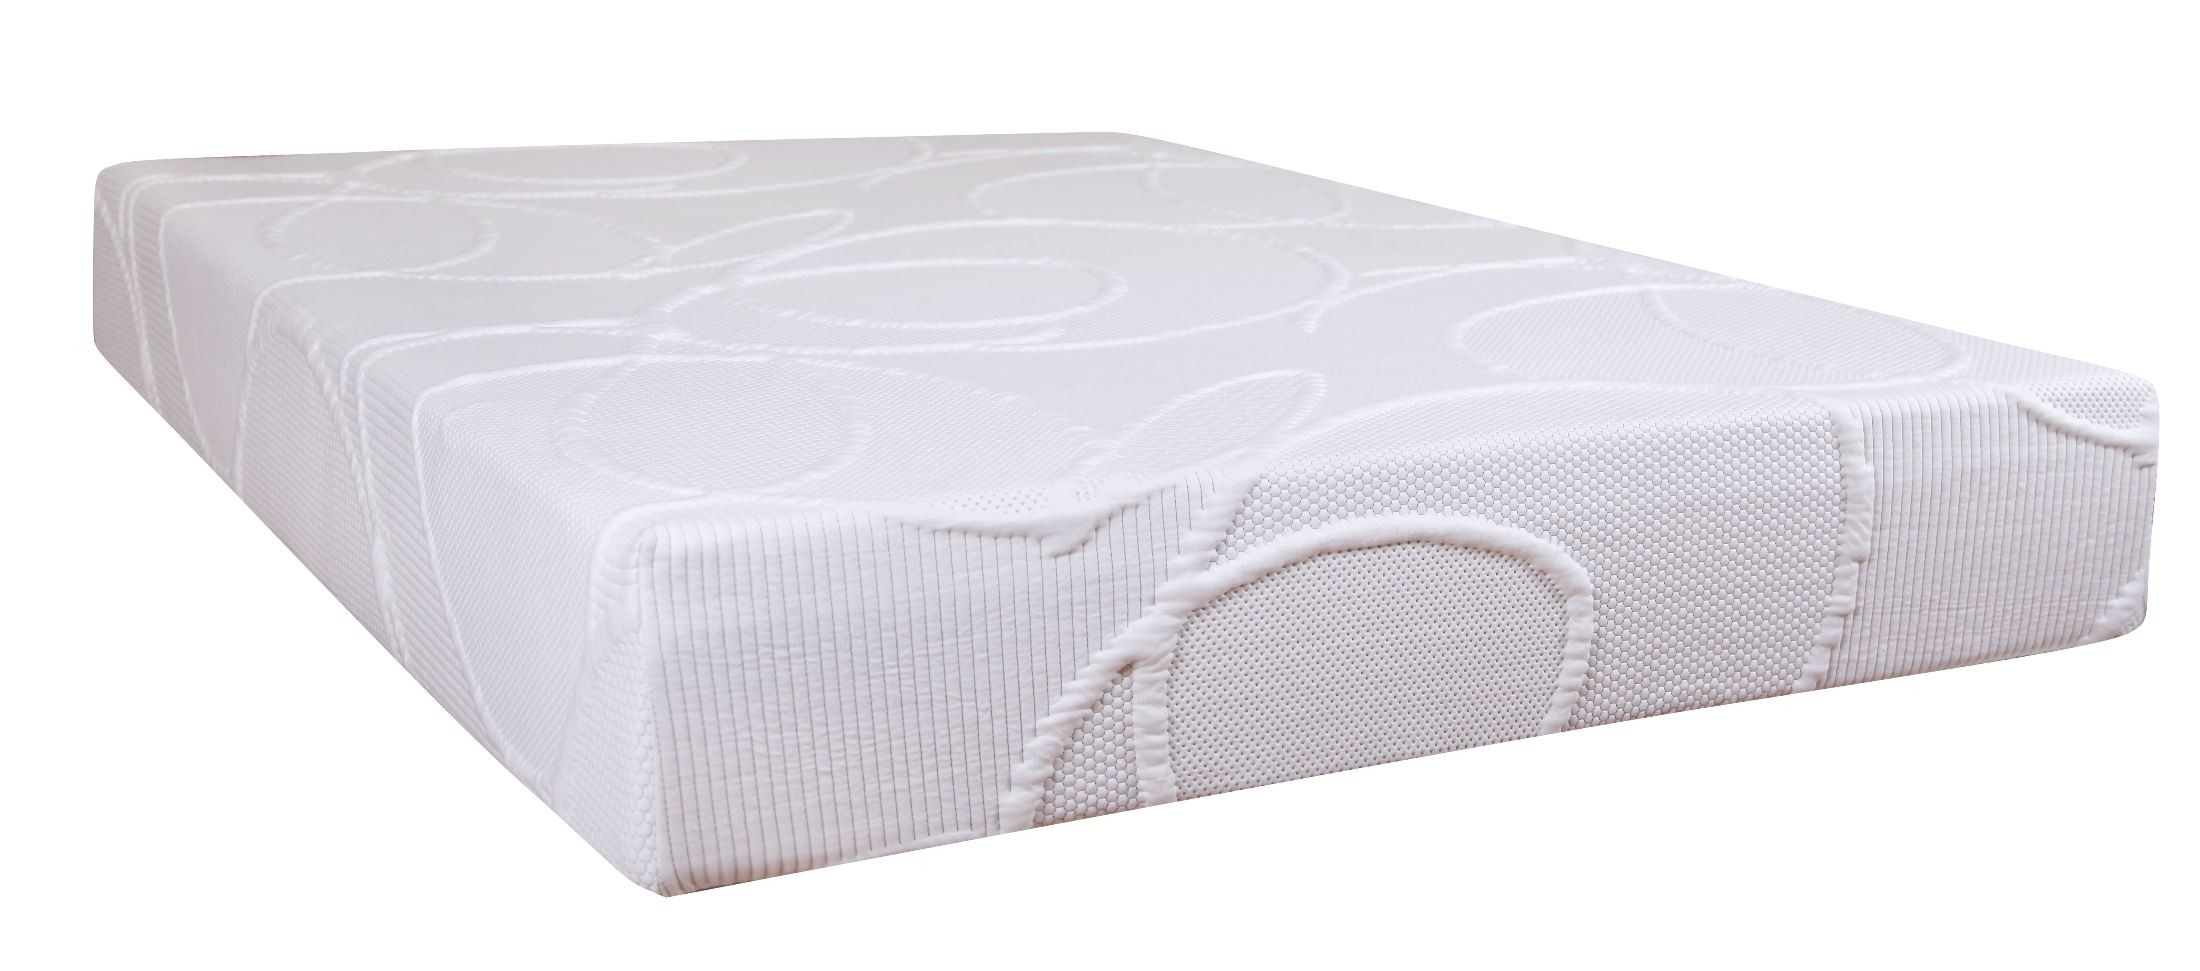 Polaris 10 memory foam xl twin size mattress from klaussner polaristxtmat coleman furniture Best twin size mattress